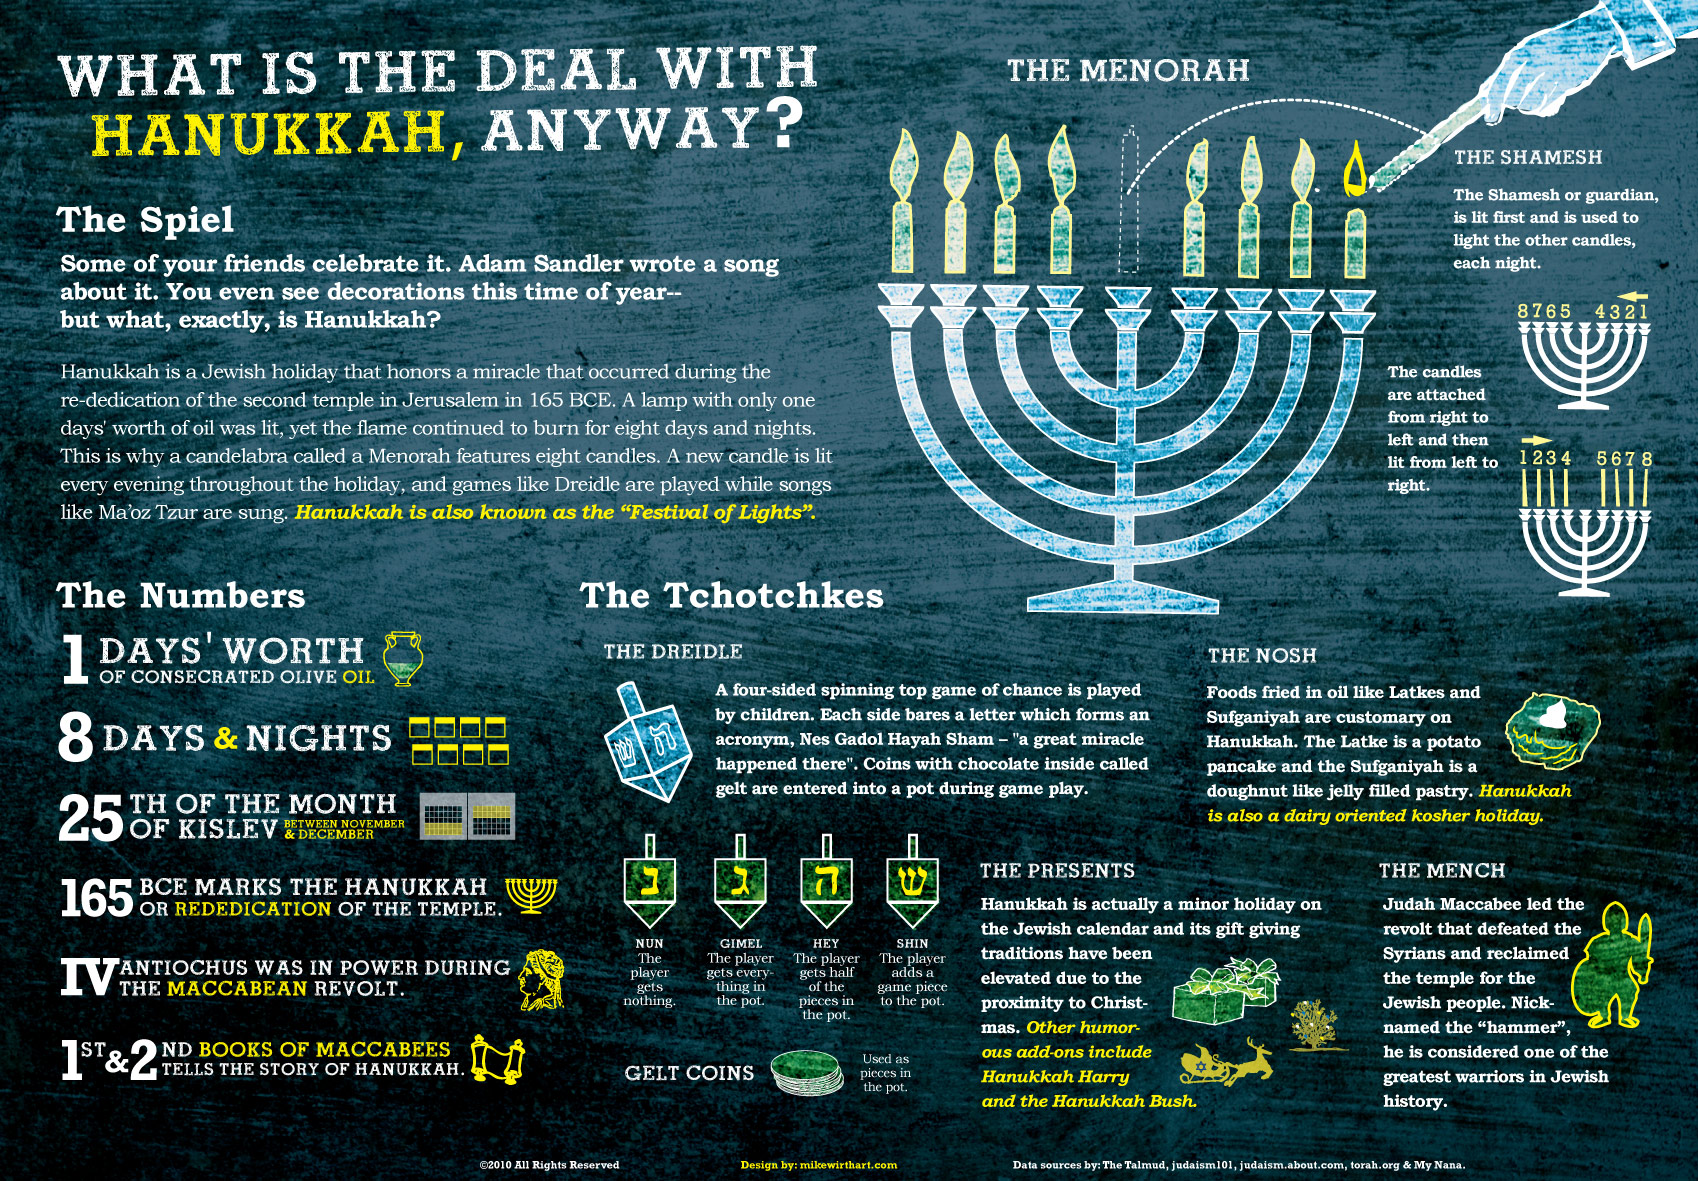 What is the deal with Hanukkah Anyway?